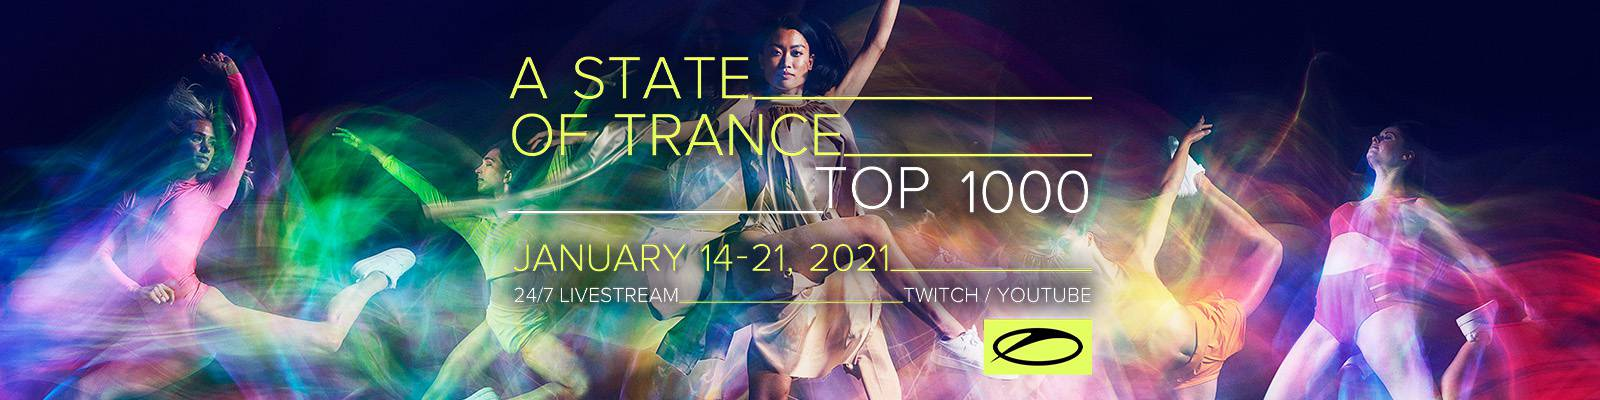 Armin van Buuren's All-Time A State Of Trance Top 1000 List!